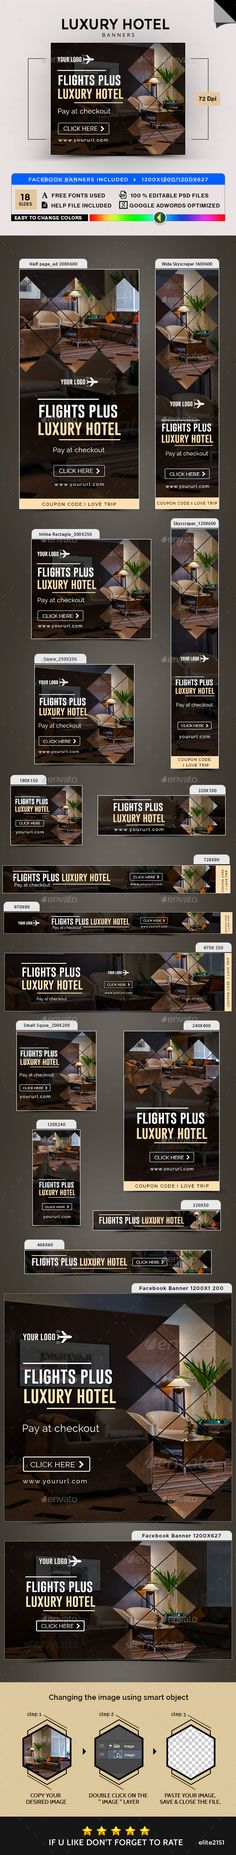 Luxury Hotel Banners - Banners & Ads Web Elements Download here : https://graphicriver.net/item/luxury-hotel-banners/19564396?s_rank=85&ref=Al-fatih